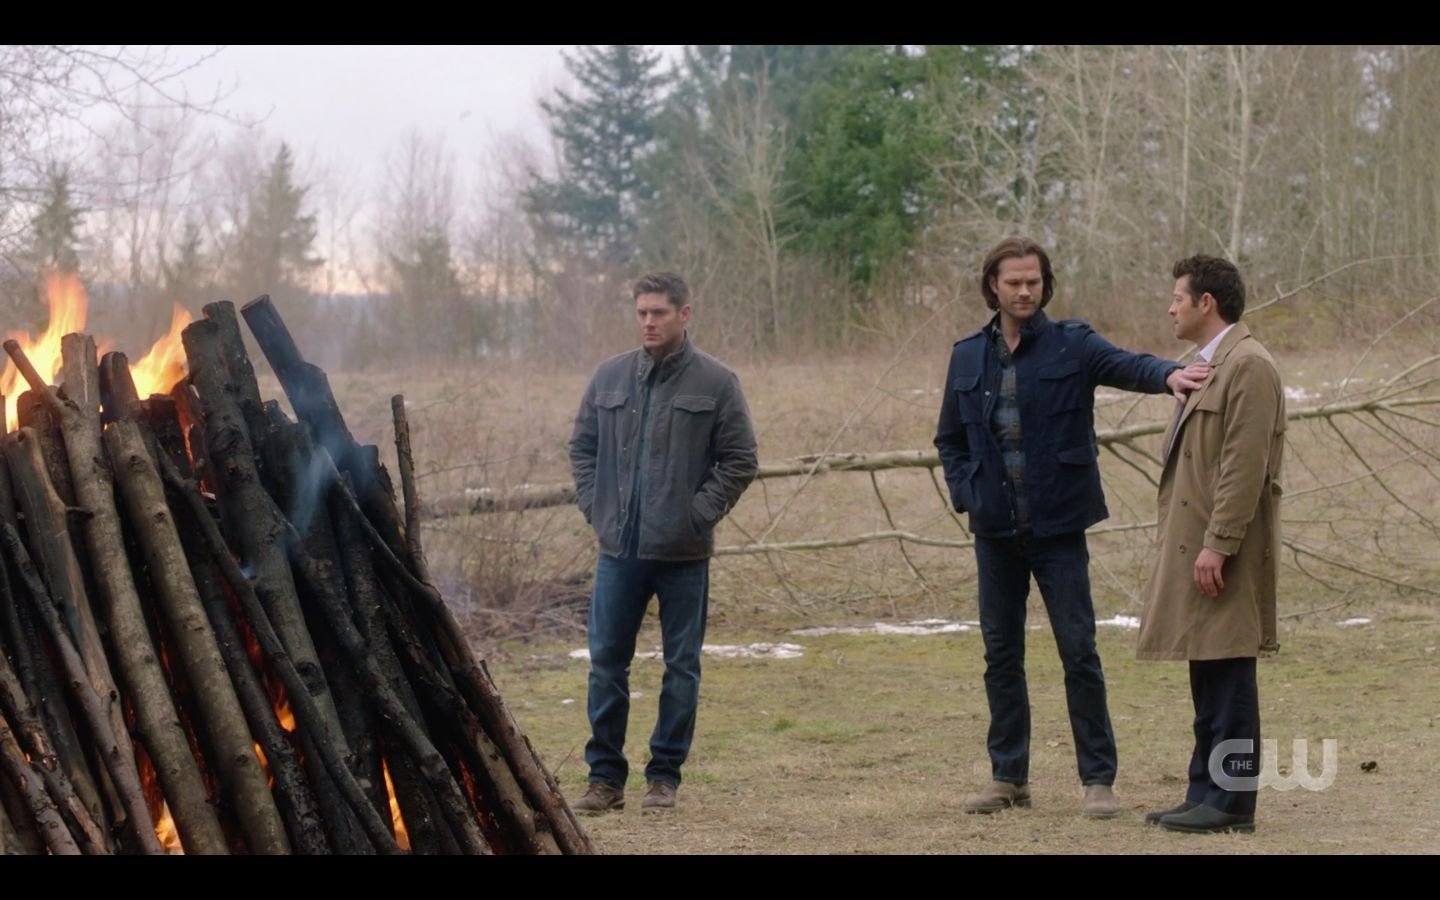 Castiel tries to go to him to offer comfort, but Sam Winchester puts out a hand and stops him, shaking his head as fire burns.